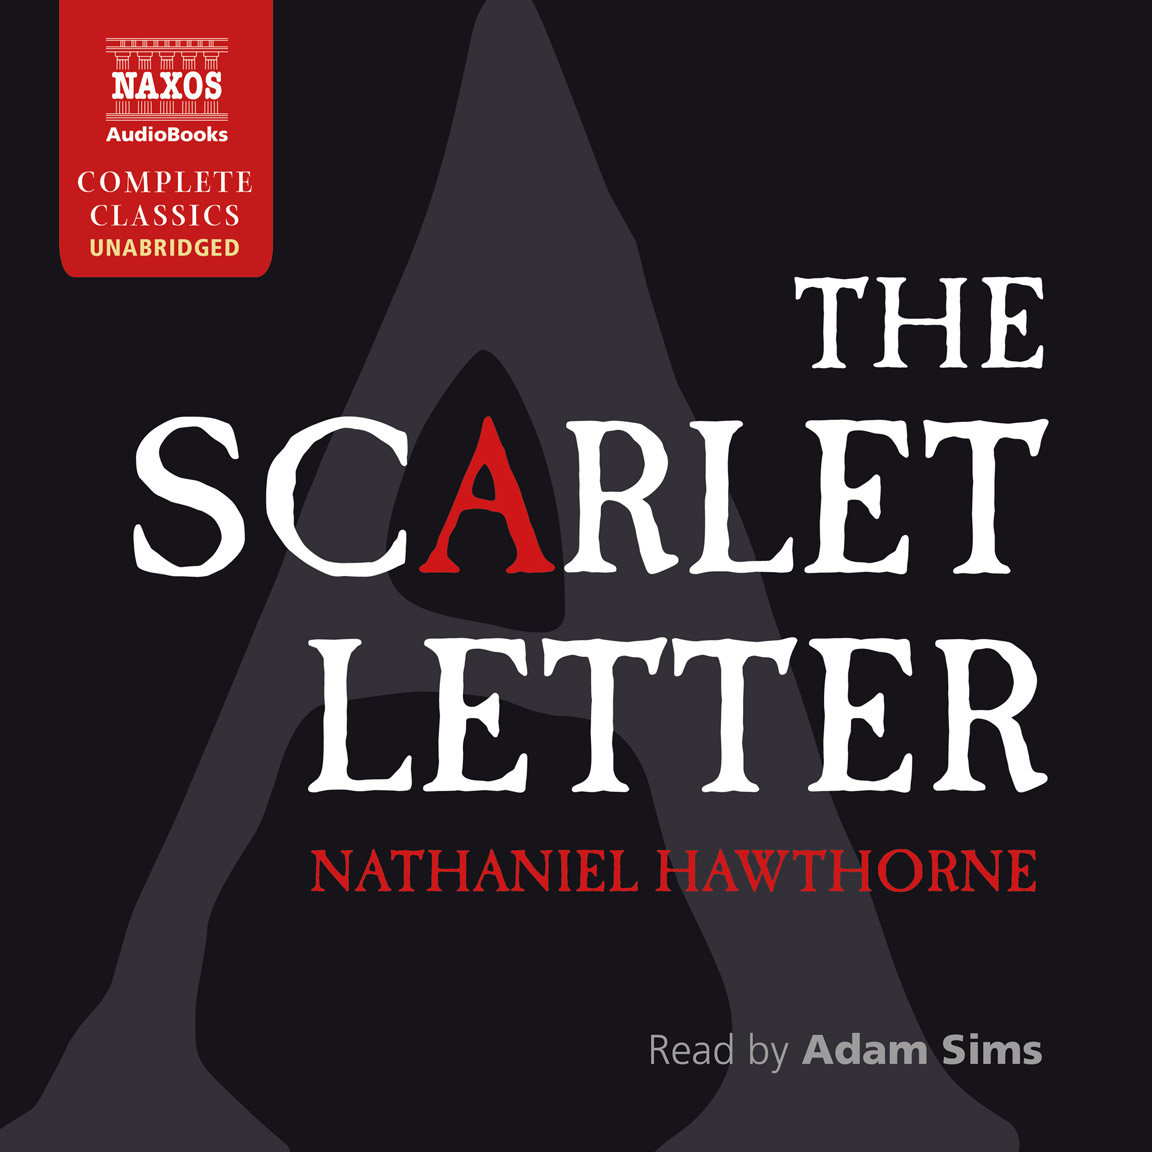 Scarlet Letter The Unabridged Naxos AudioBooks